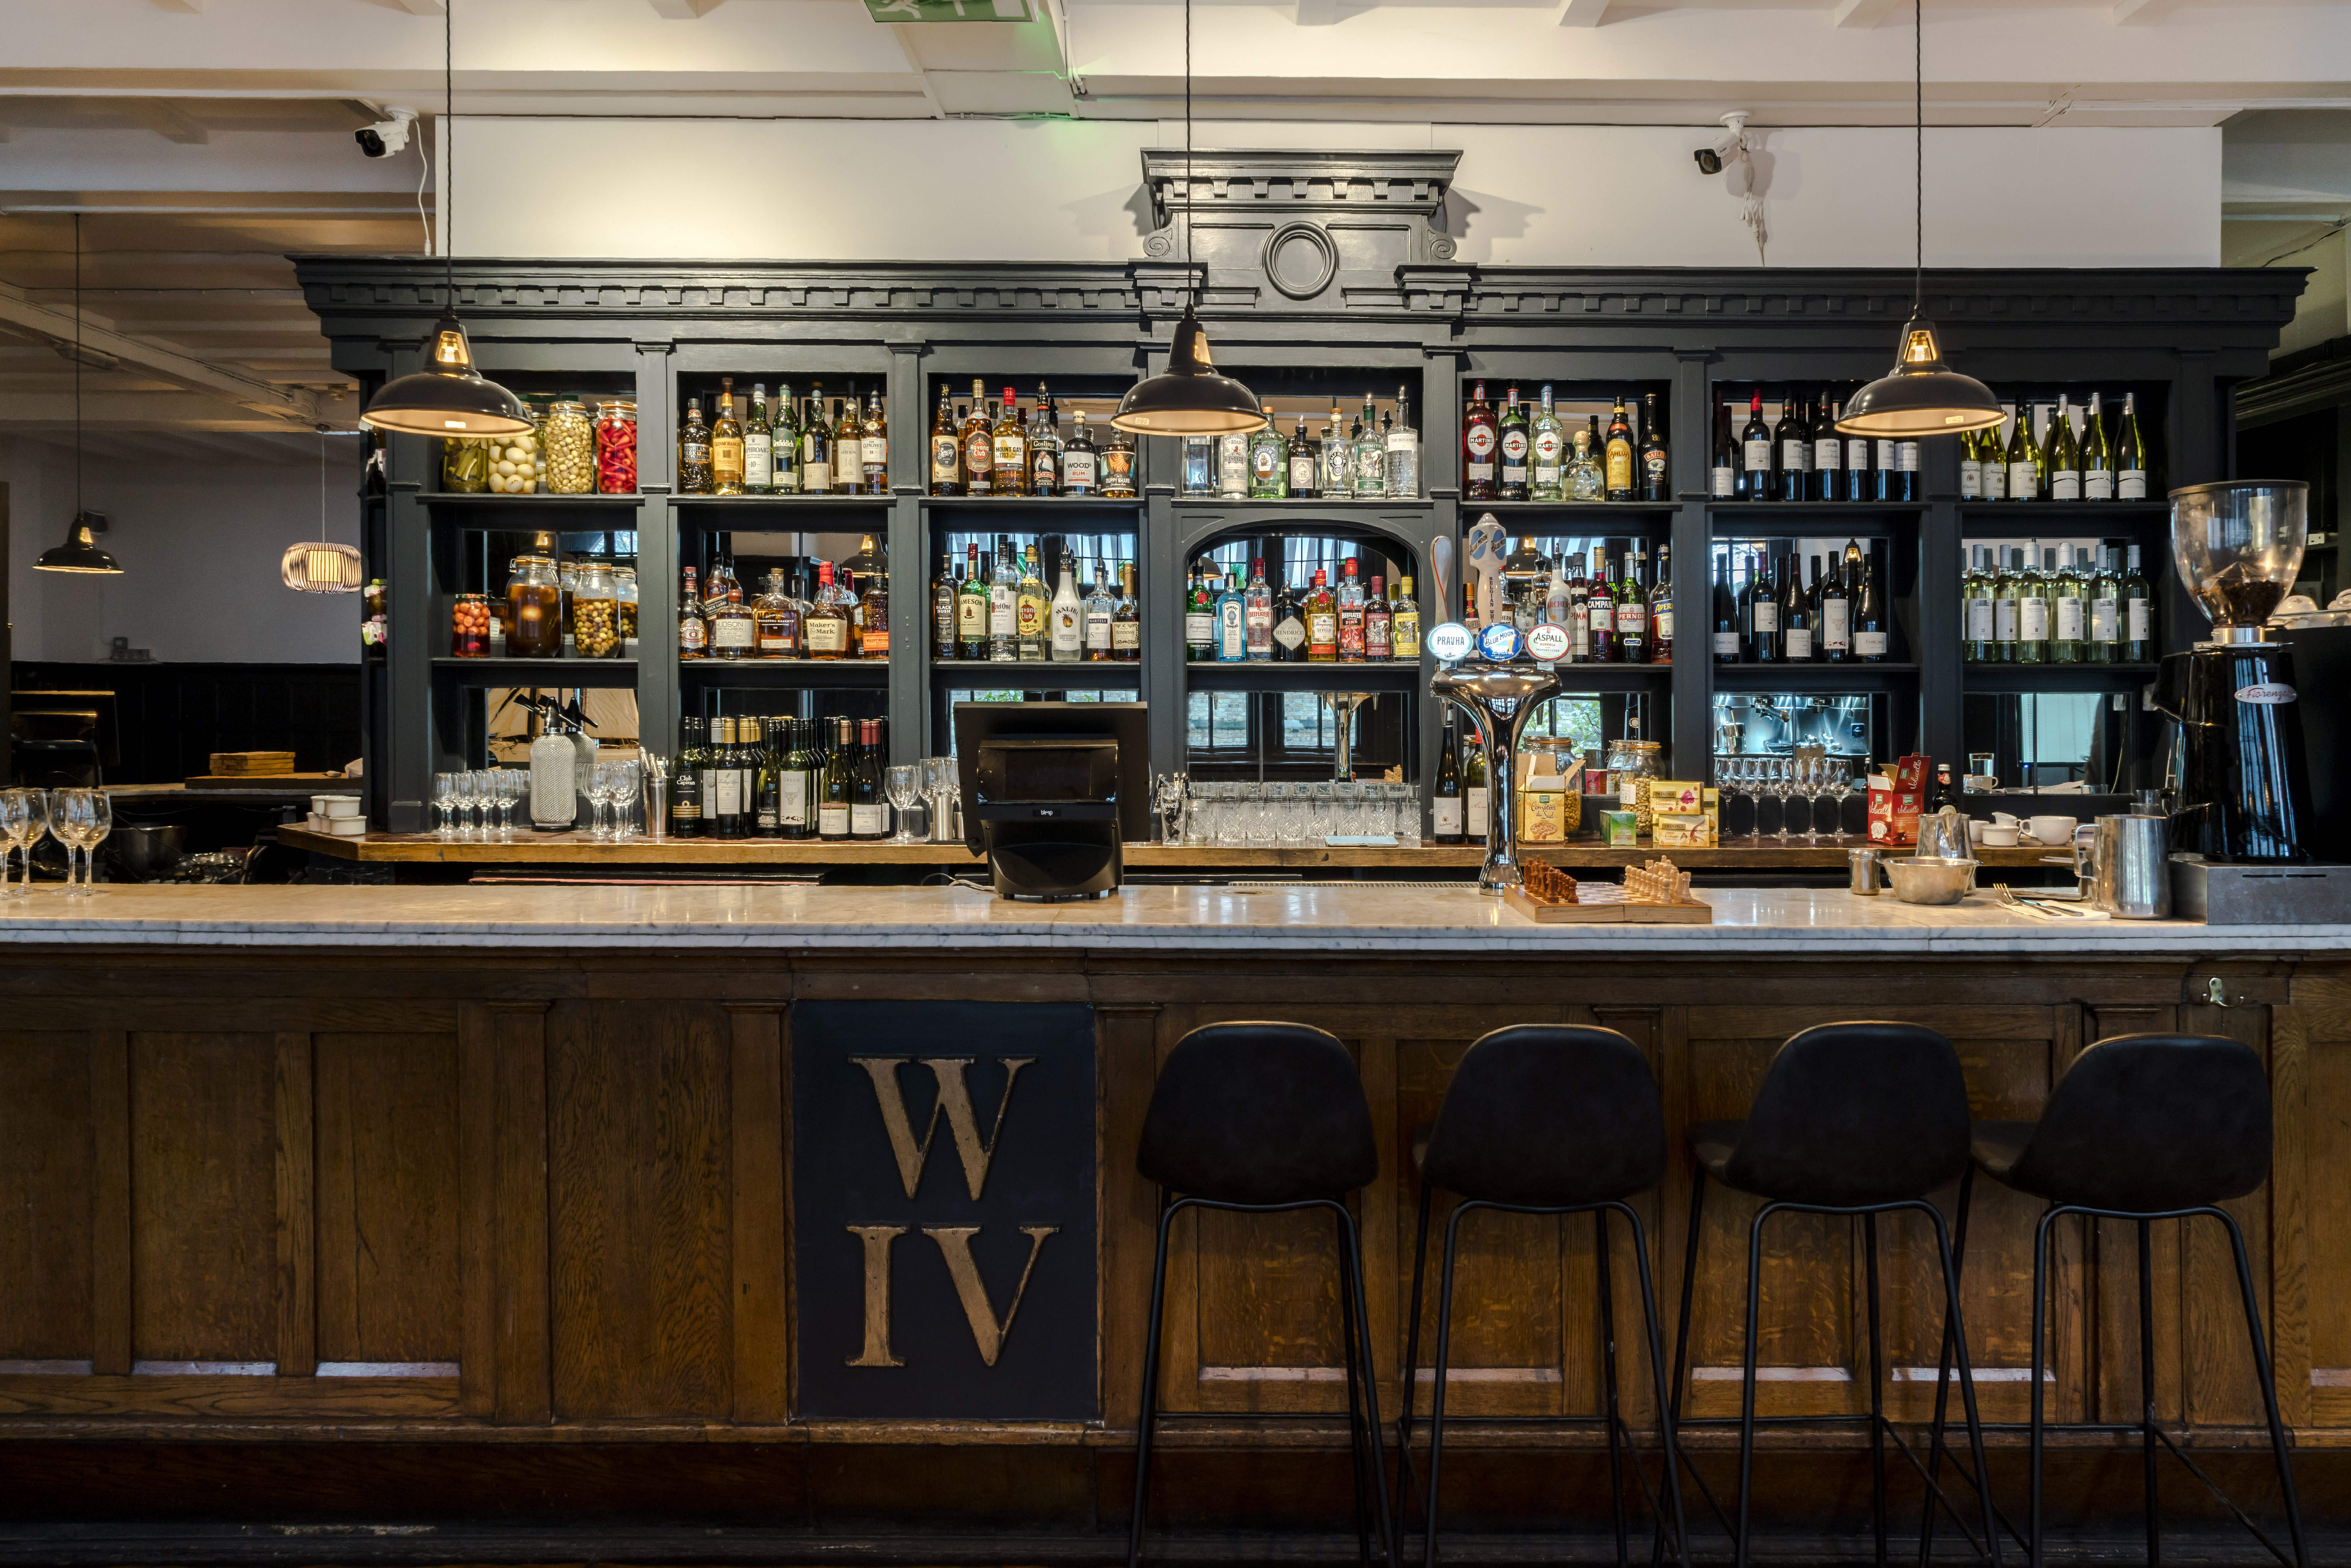 The William IV London - Kensal Green